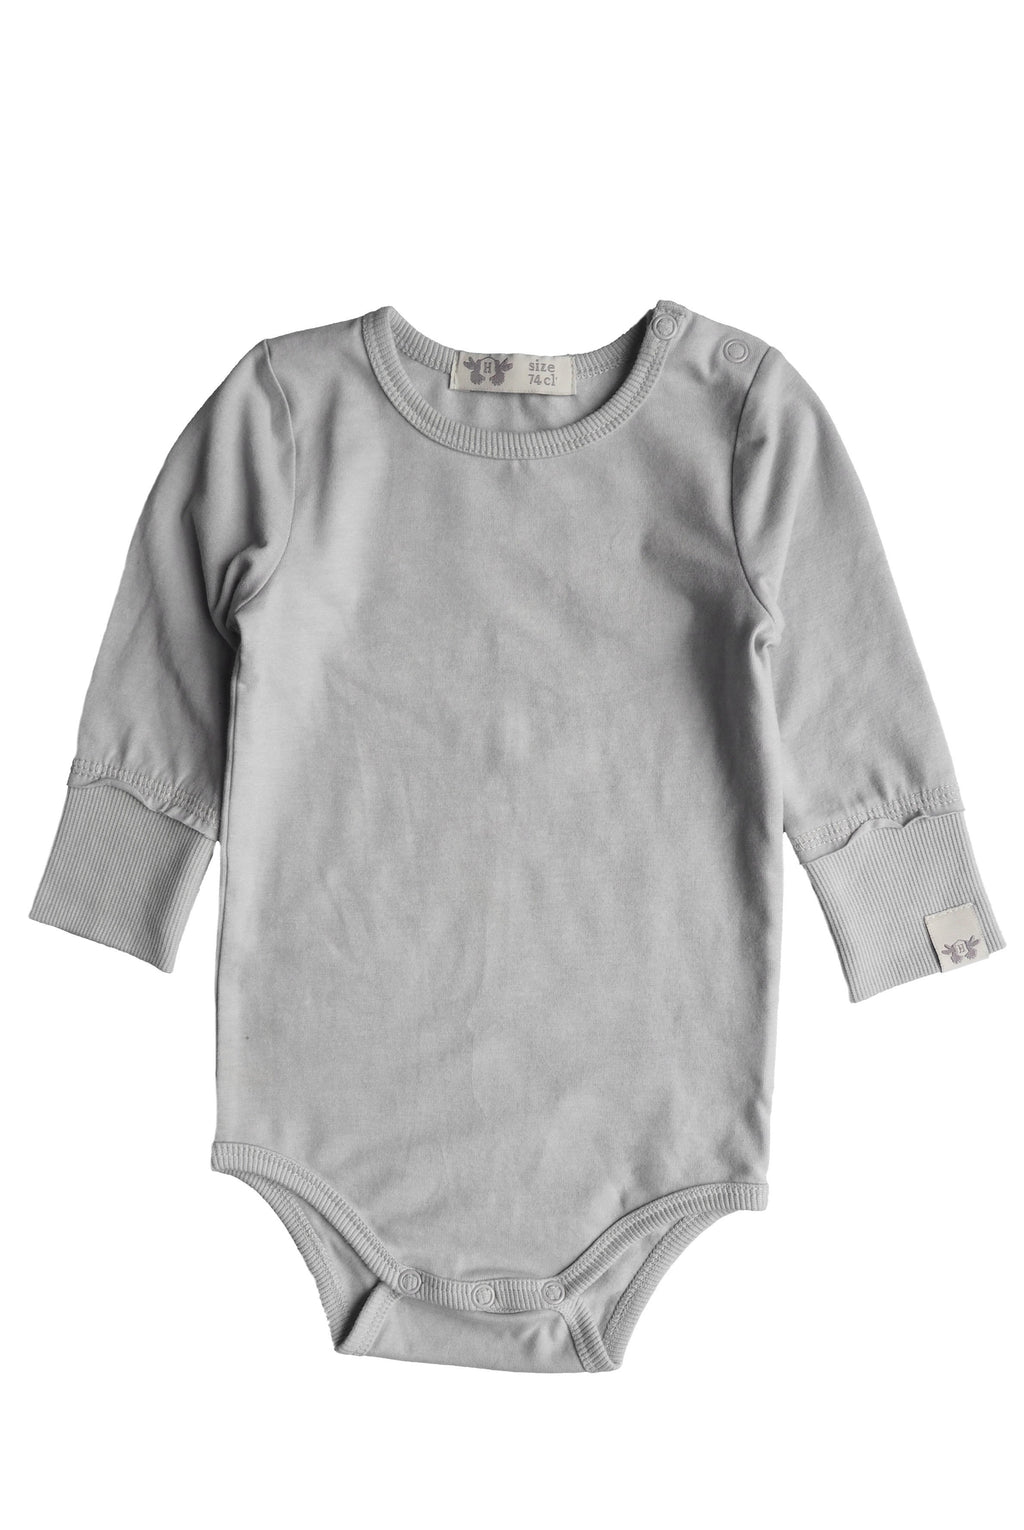 LINUS enfärgad body - Light Grey